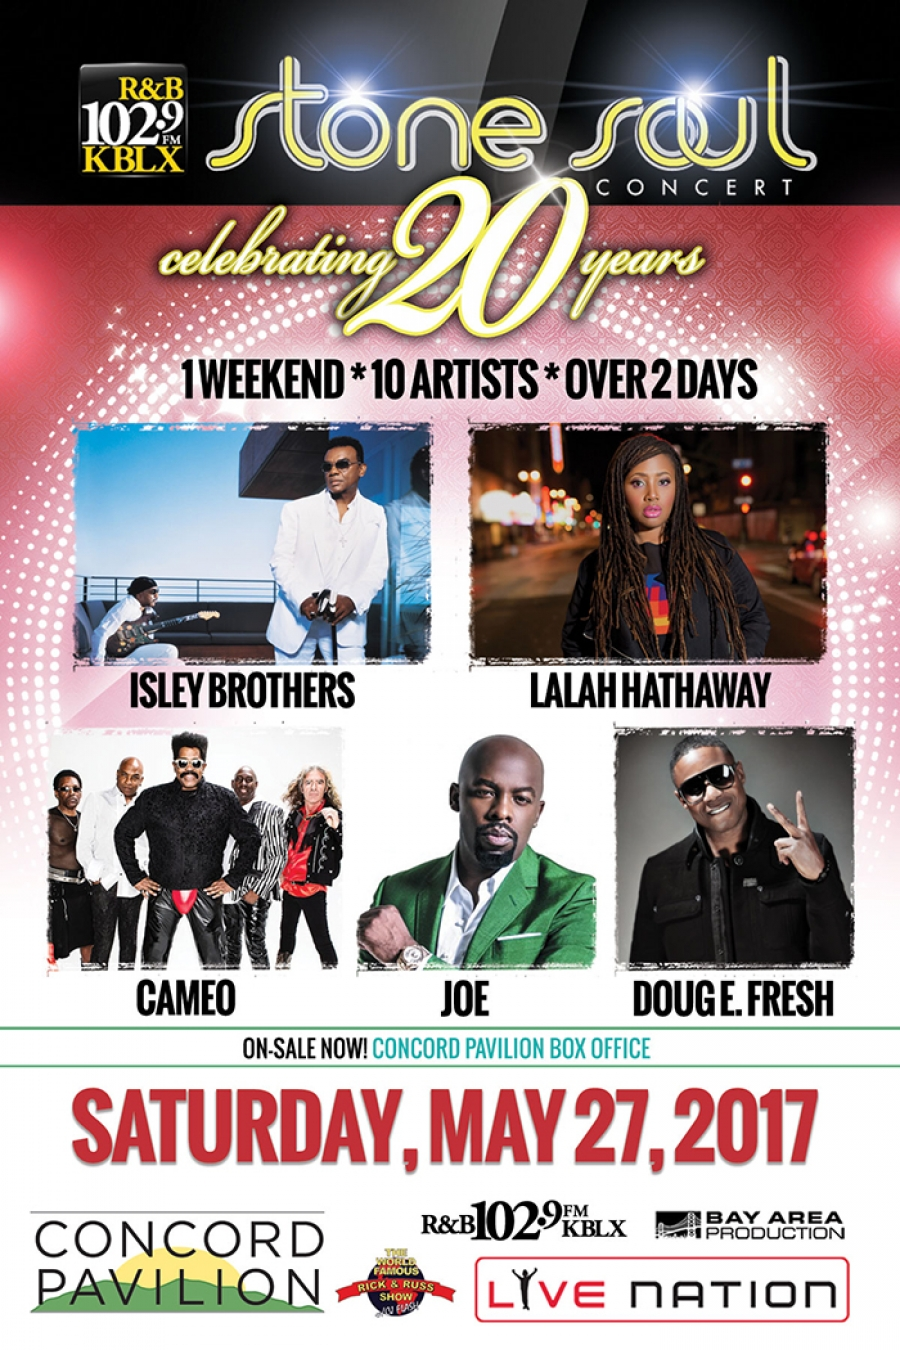 2017 Stone Soul Concert celebrating 20 years over 1 weekend with 10 artists